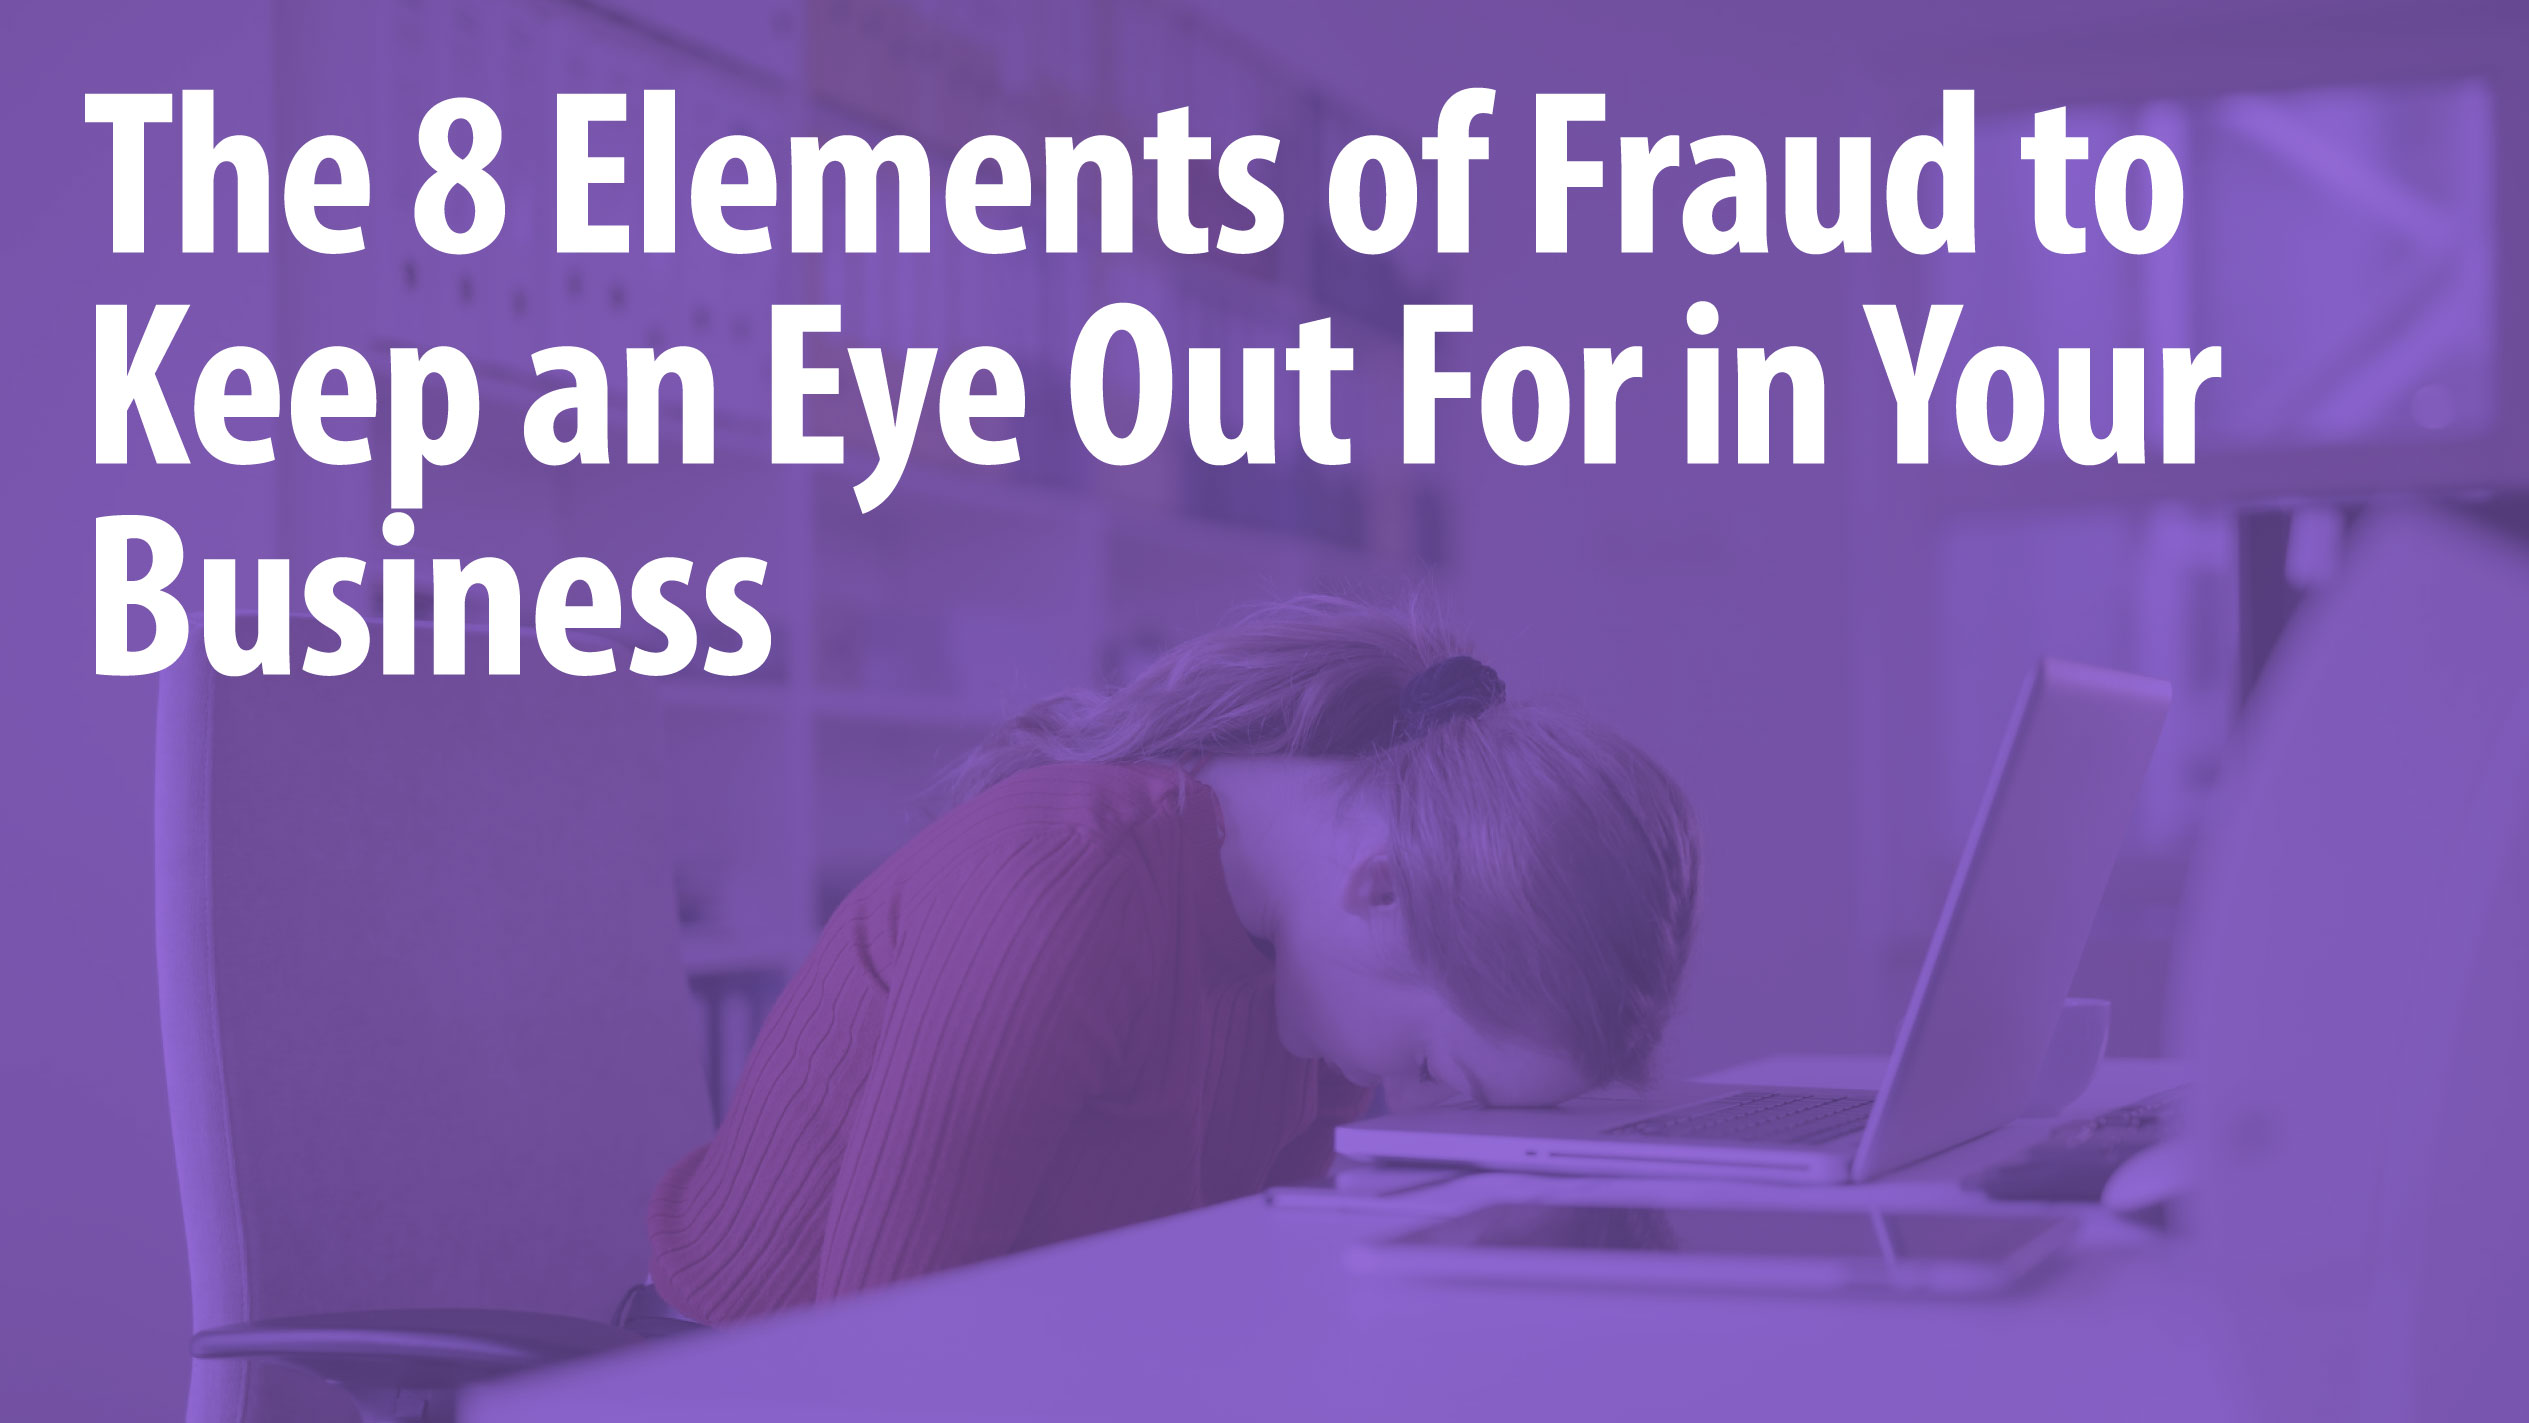 The 8 Elements of Fraud to Keep an Eye Out For in Your Business